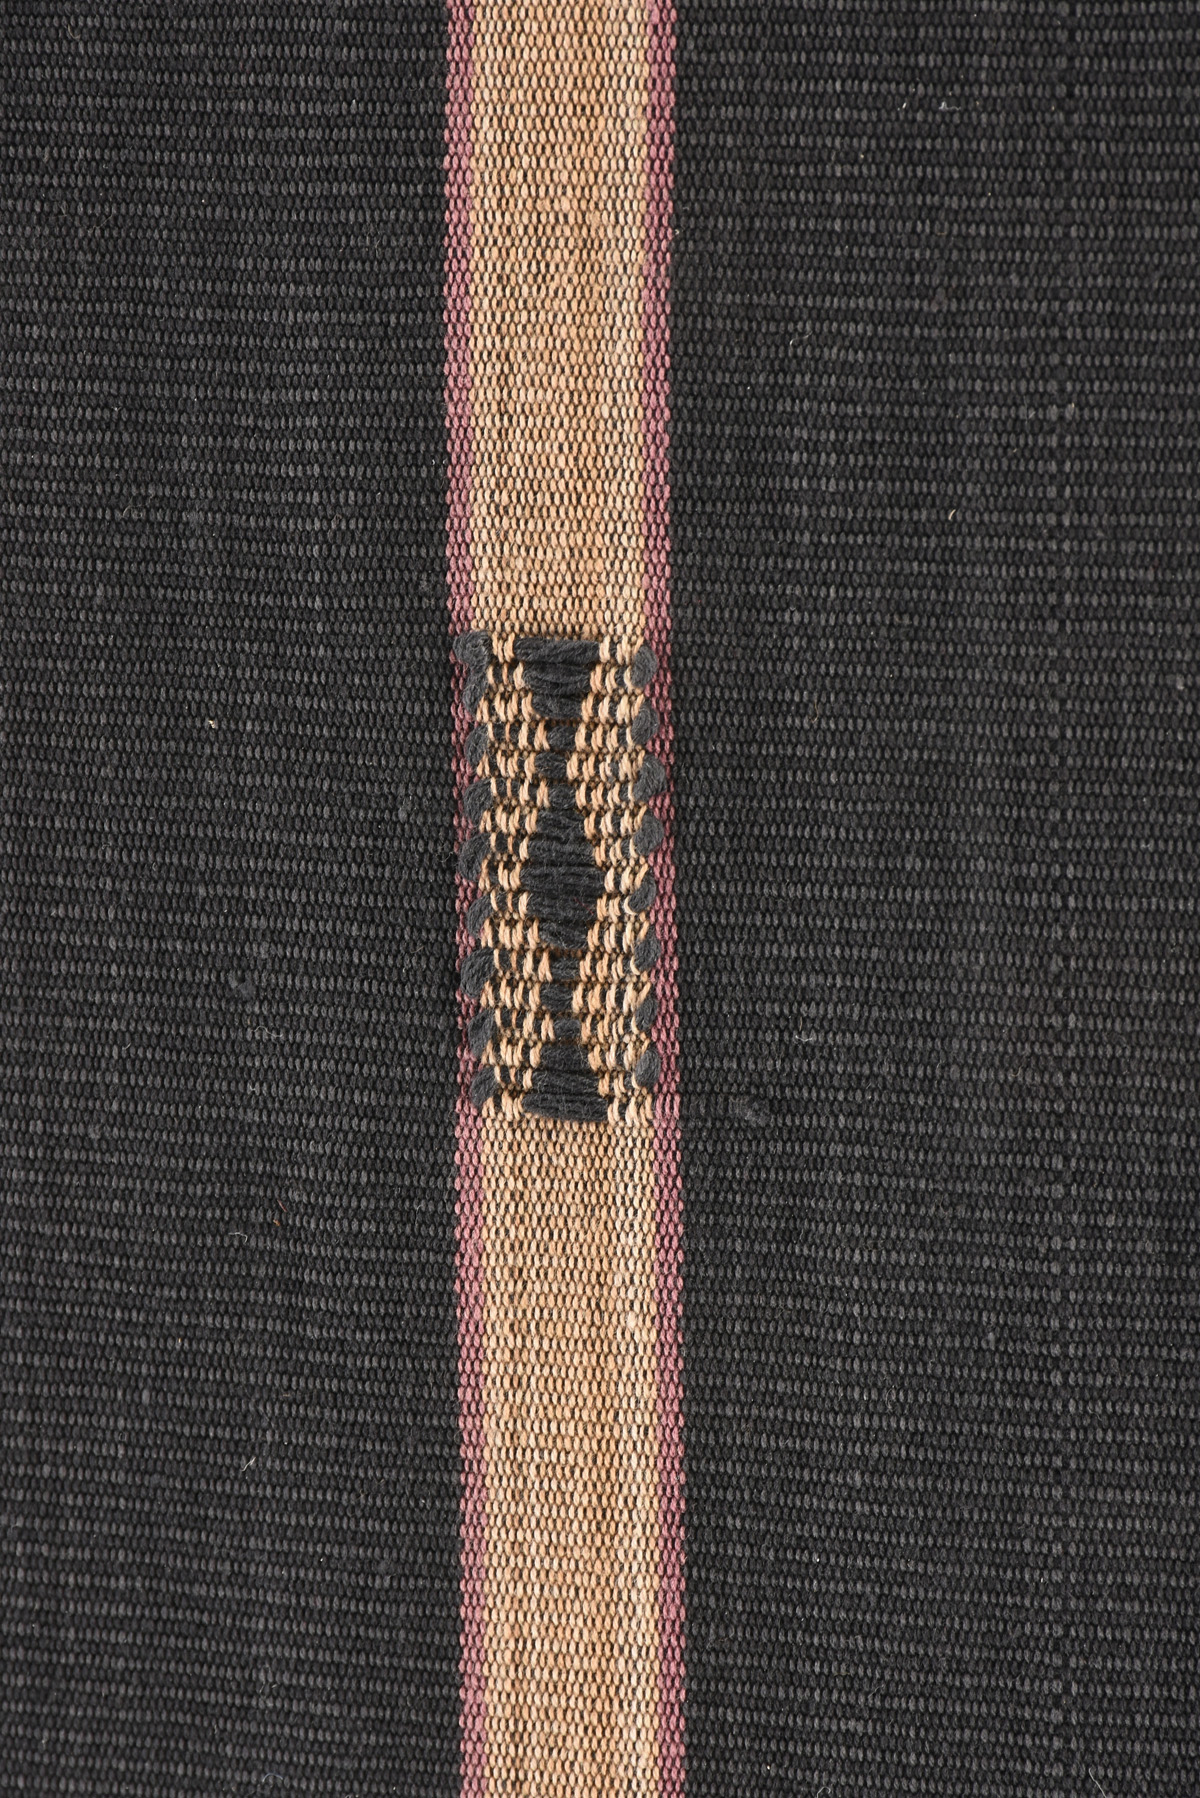 Lot 19 - A NAGA FINELY LOOMED BLACK AND TAN STRIPED COTTON WOMAN'S ANGAMI SHAWL, NAGALAND, SECOND HALF 20TH